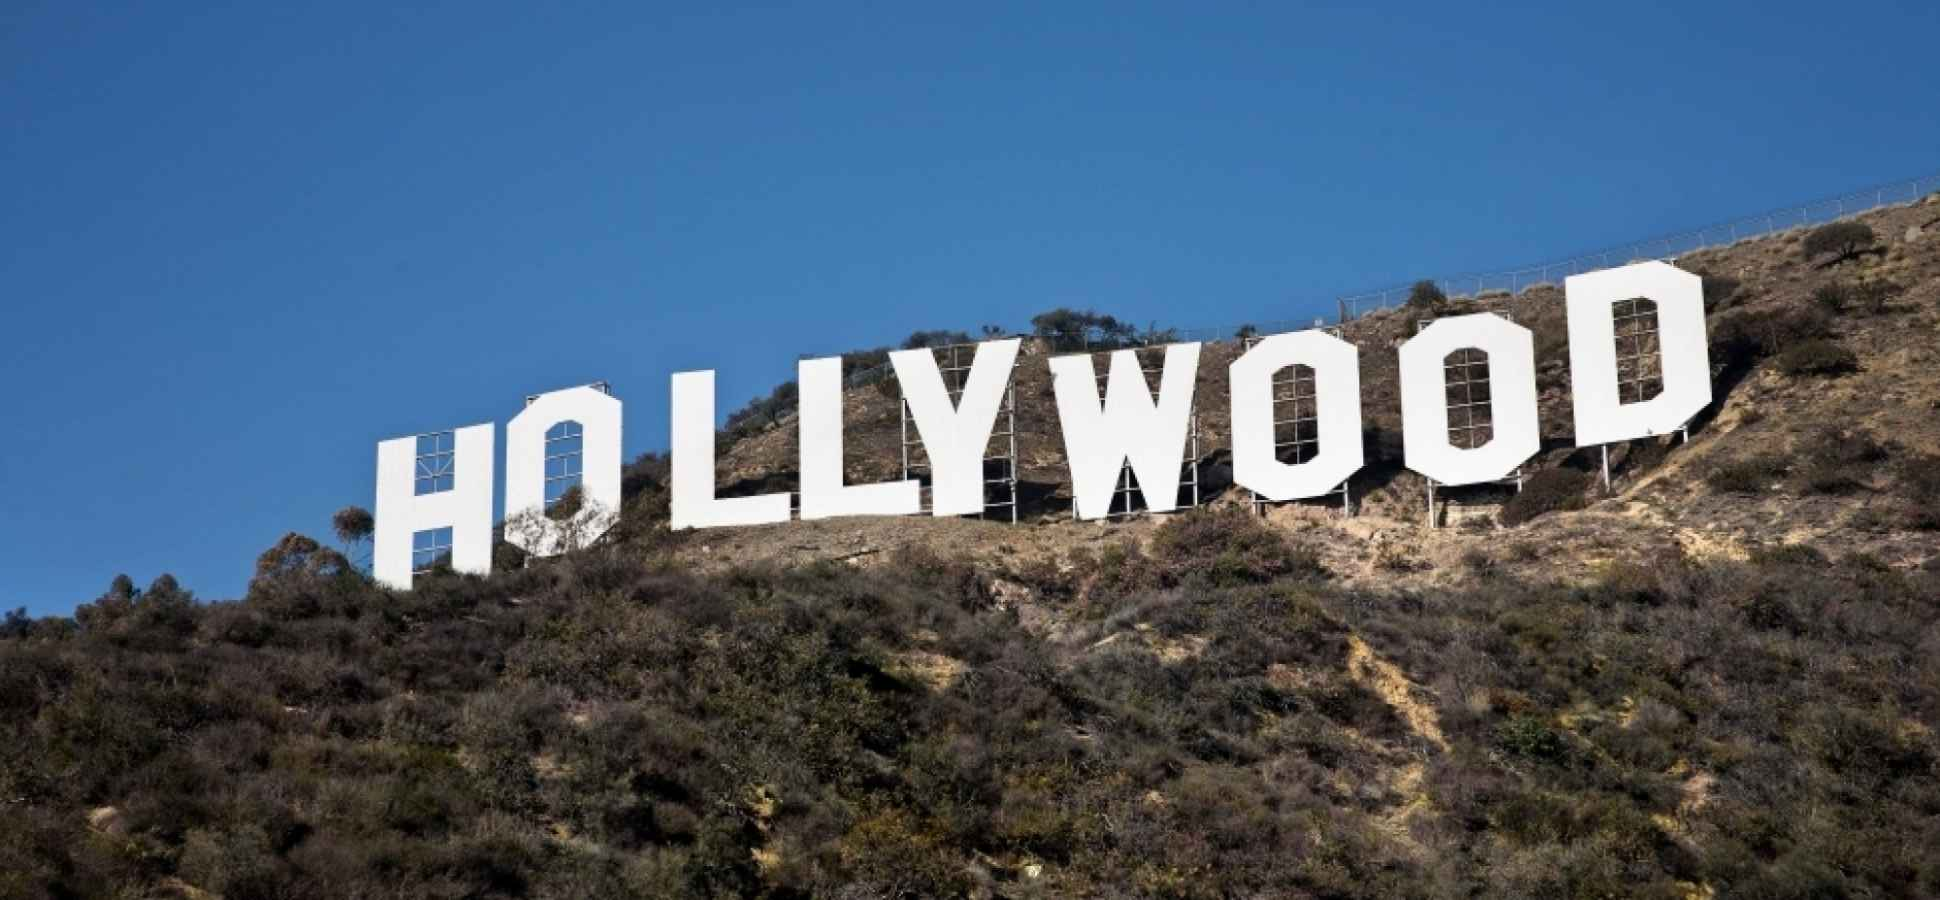 10 Super Easy Success Tips From a Hollywood Mogul